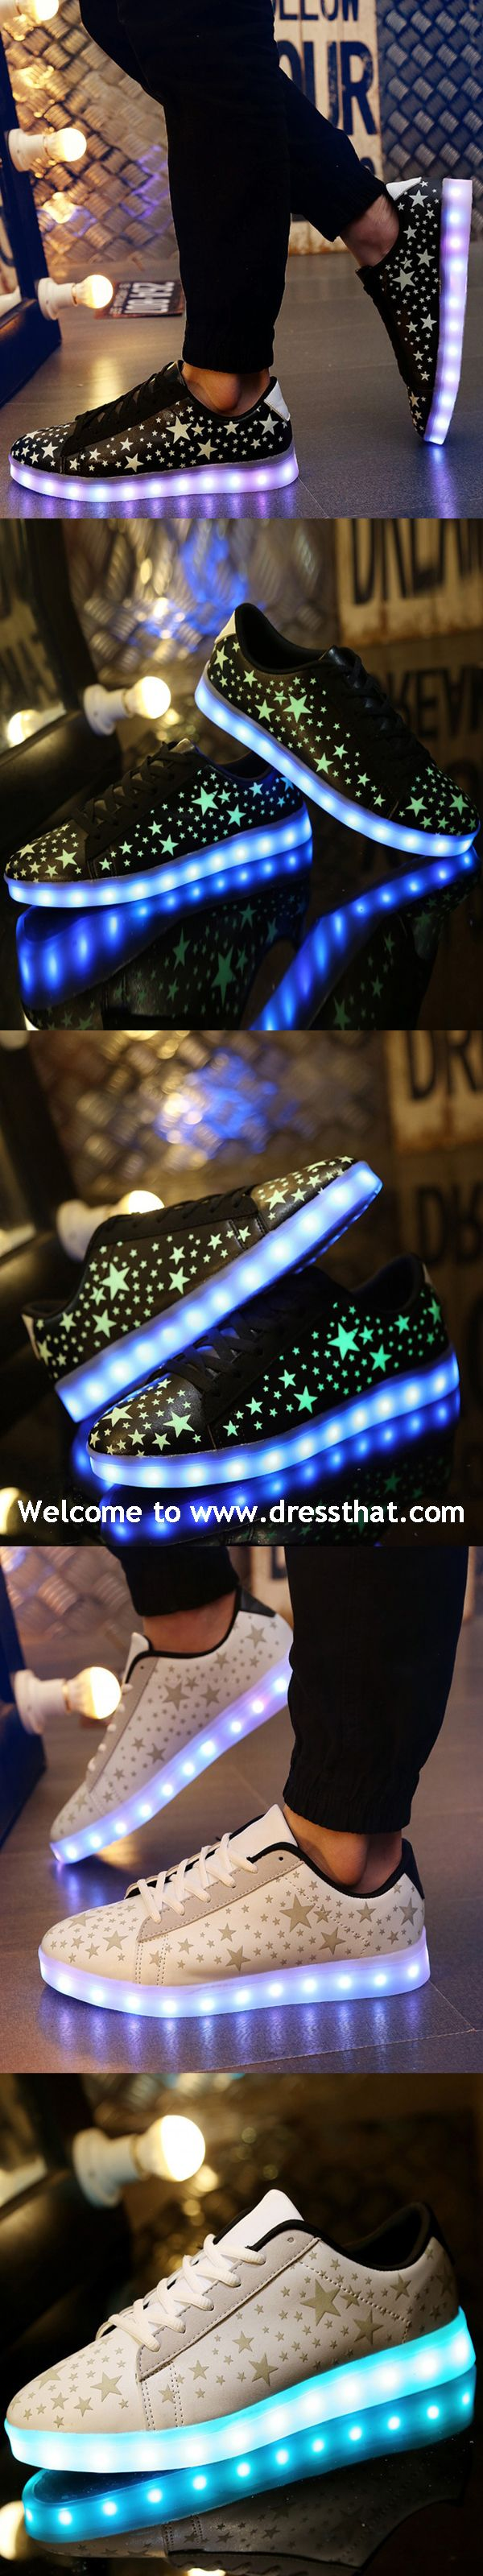 LED shoes,light up shoes,women sports shoes,sports shoes,USB charge shoes